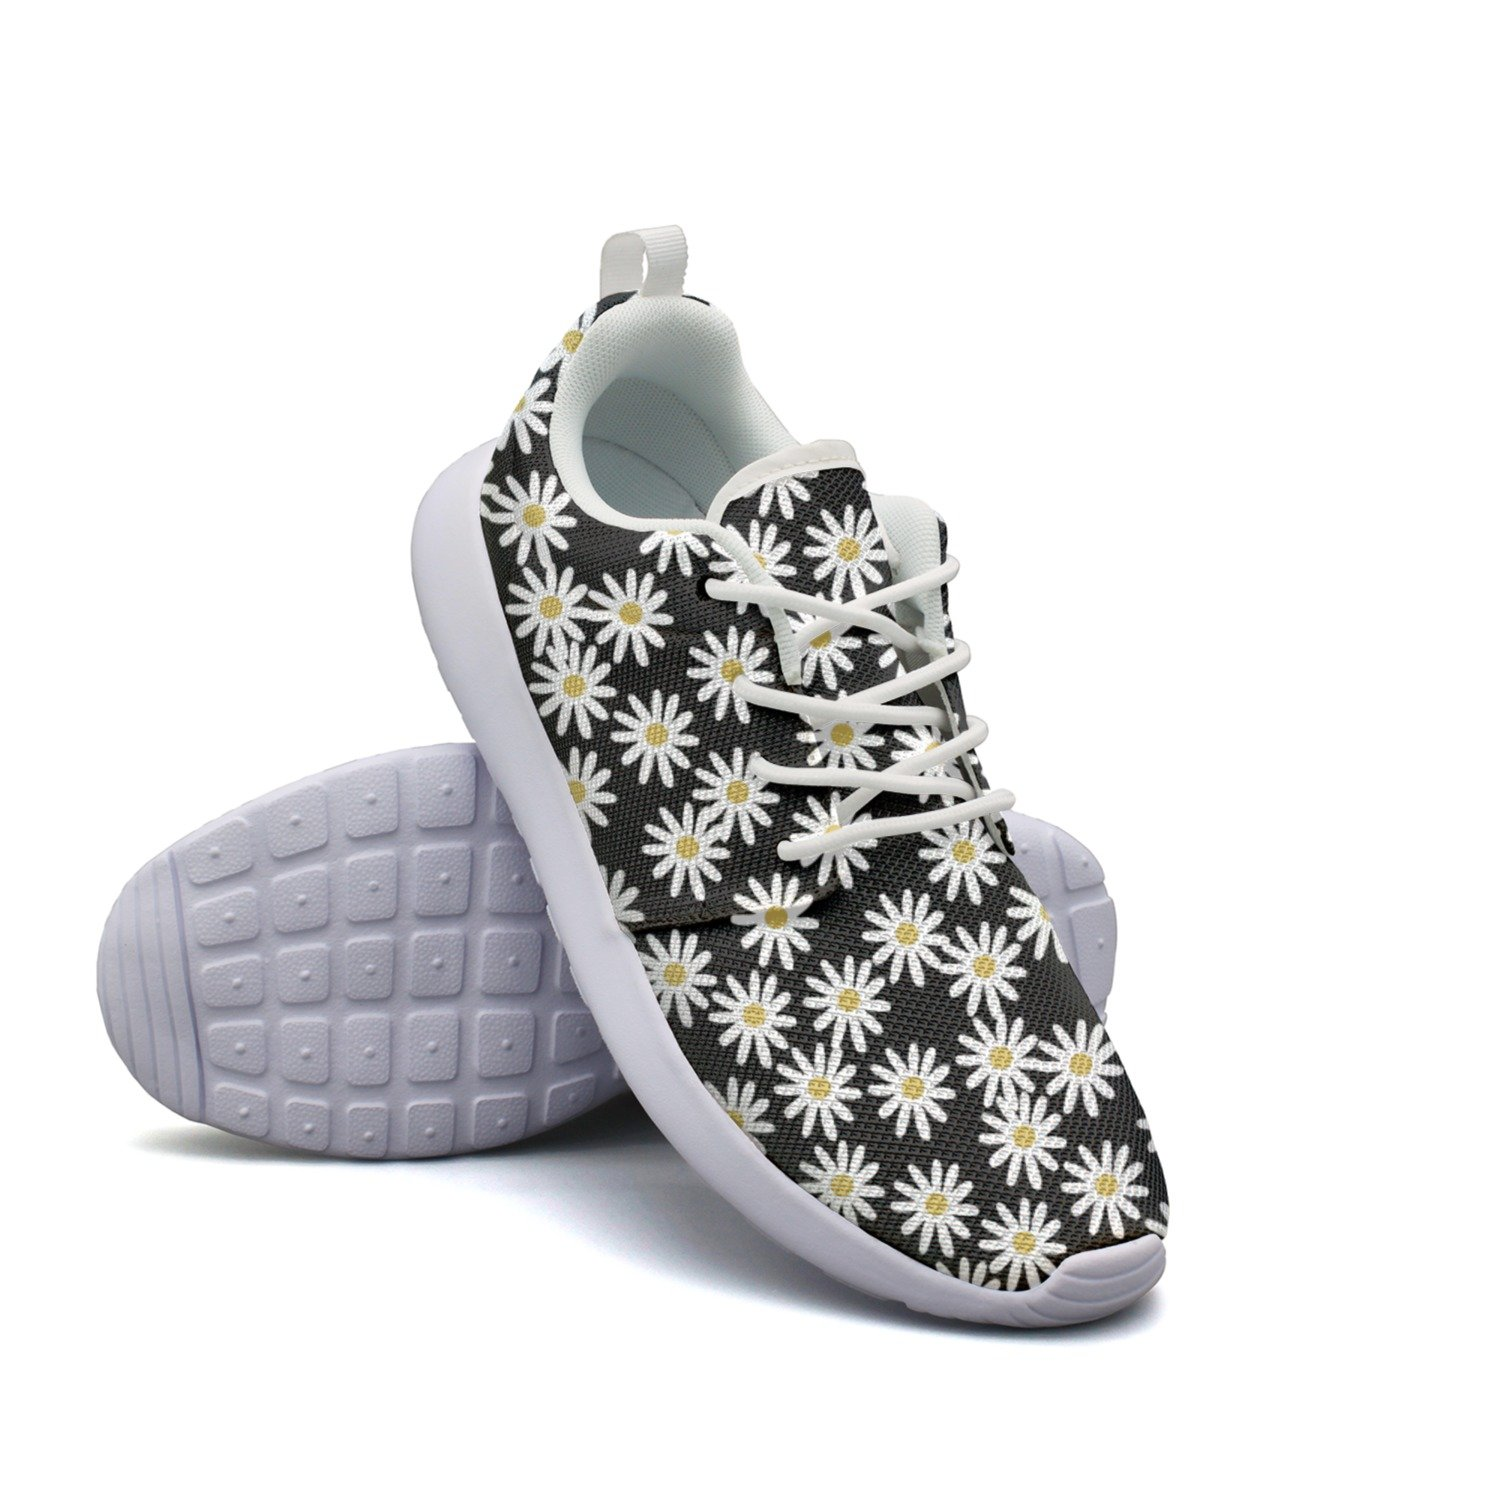 fbe2ae96dd48 Amazon.com  FGBLK New Daisy On Black Background Mens Guys Custom Design  Running Shoes  Sports   Outdoors